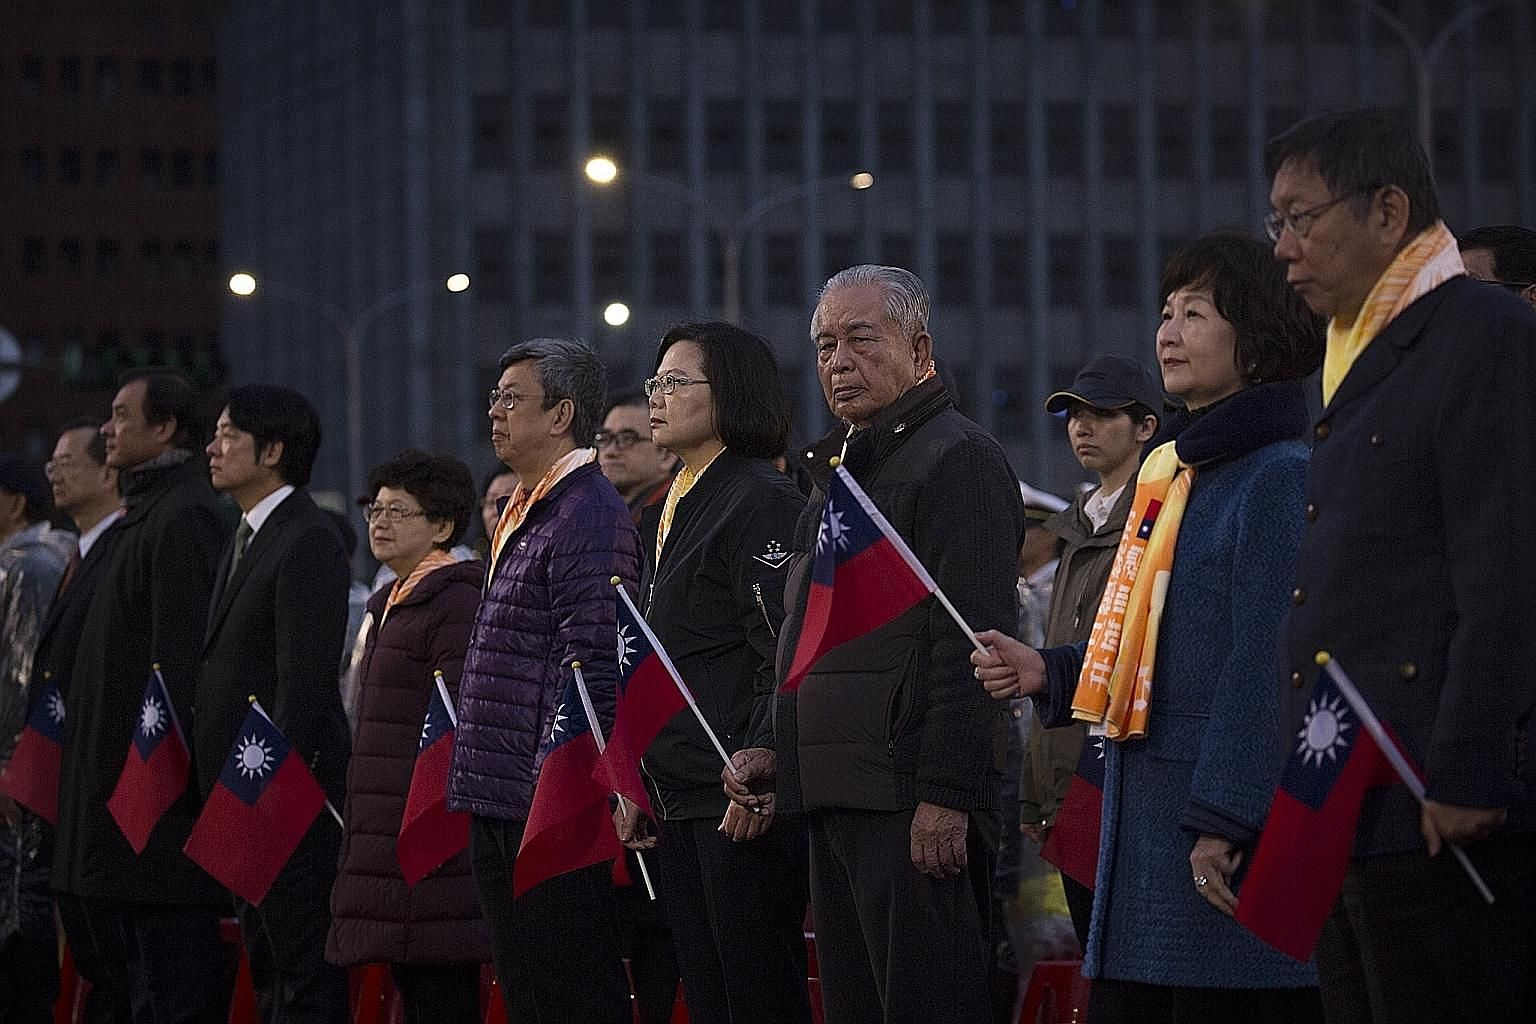 Taiwanese President Tsai Ing-wen (centre) taking part in the national flag-raising ceremony in Taipei on New Year's Day. After her party's serious setback in local elections last November, she has leaned more towards the pro-independence camp in her